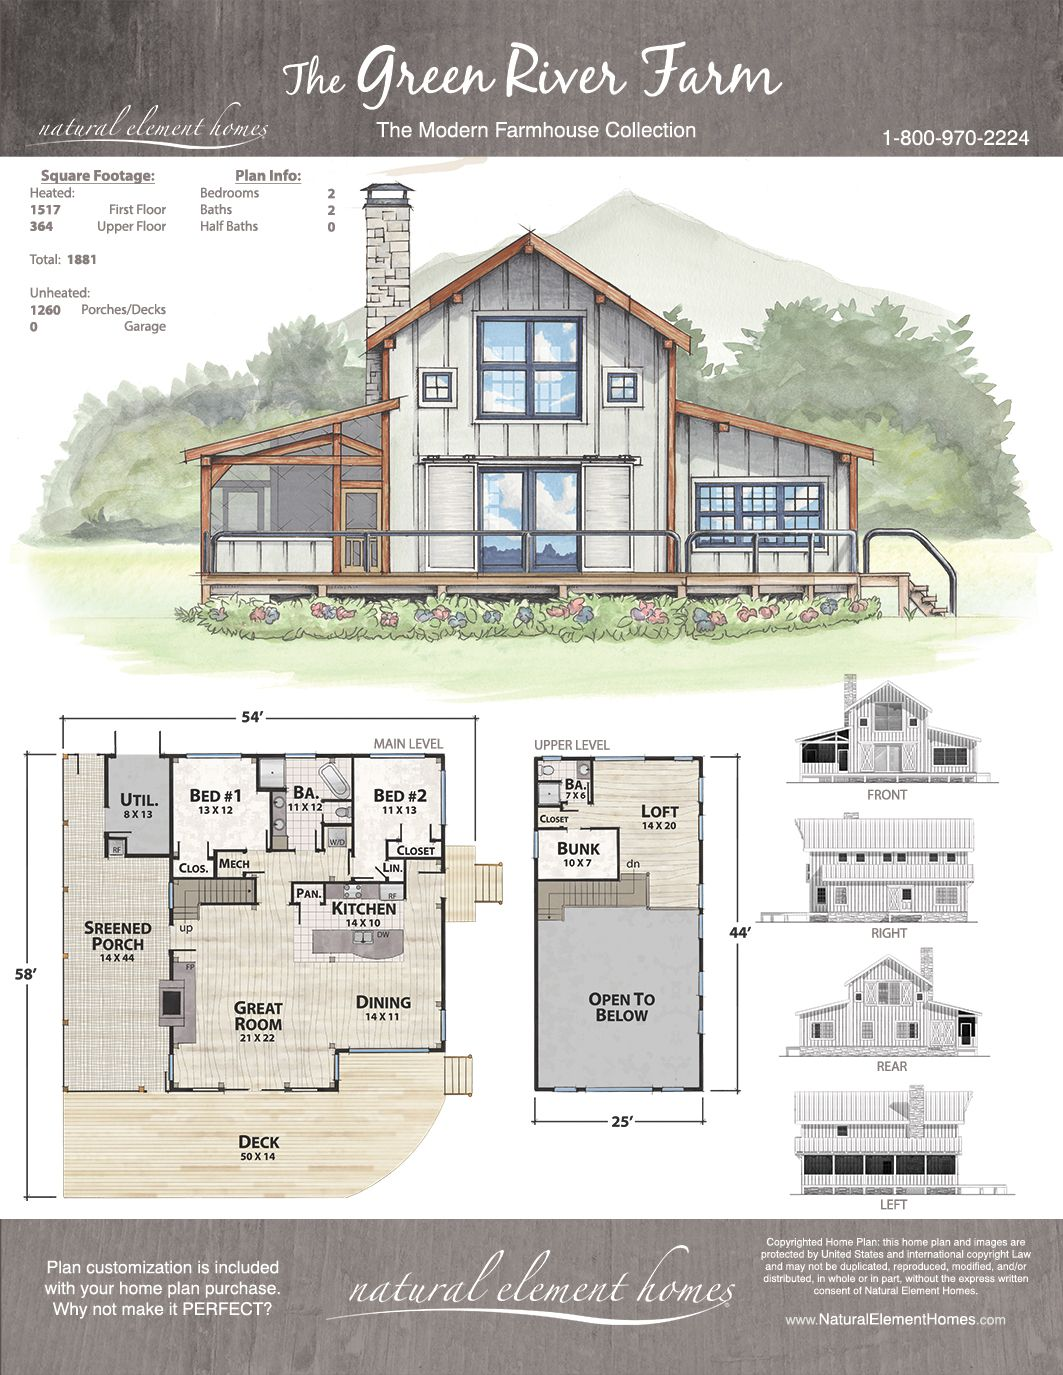 Green River Farm Natural Element Homes Farmhouse Barn House Plans Pole Barn House Plans Barn Style House